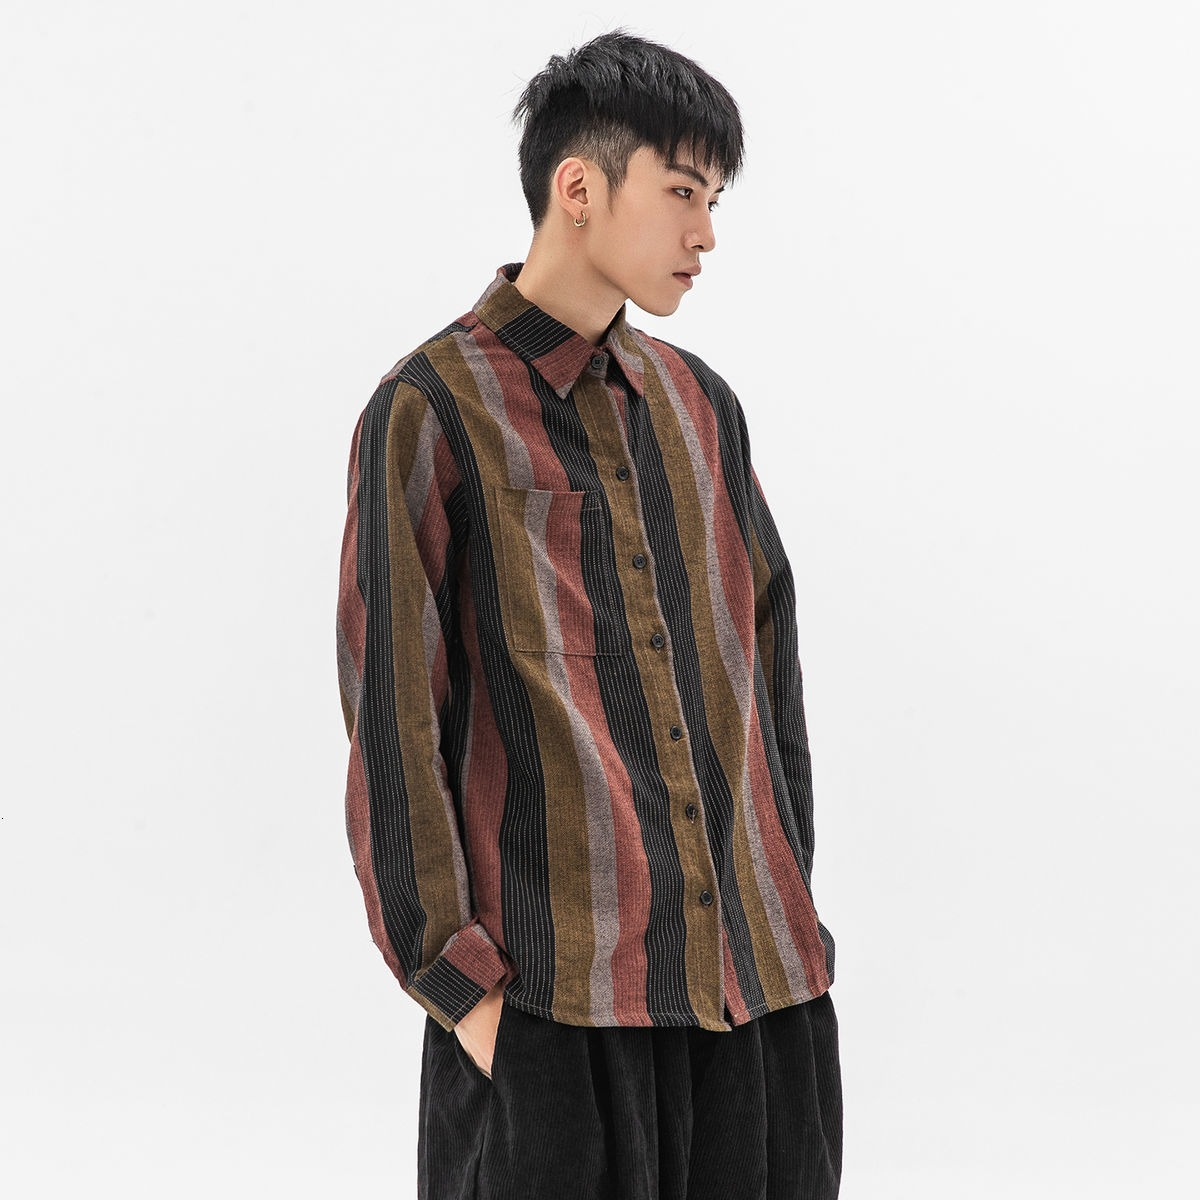 Striped Shirts With Patterns